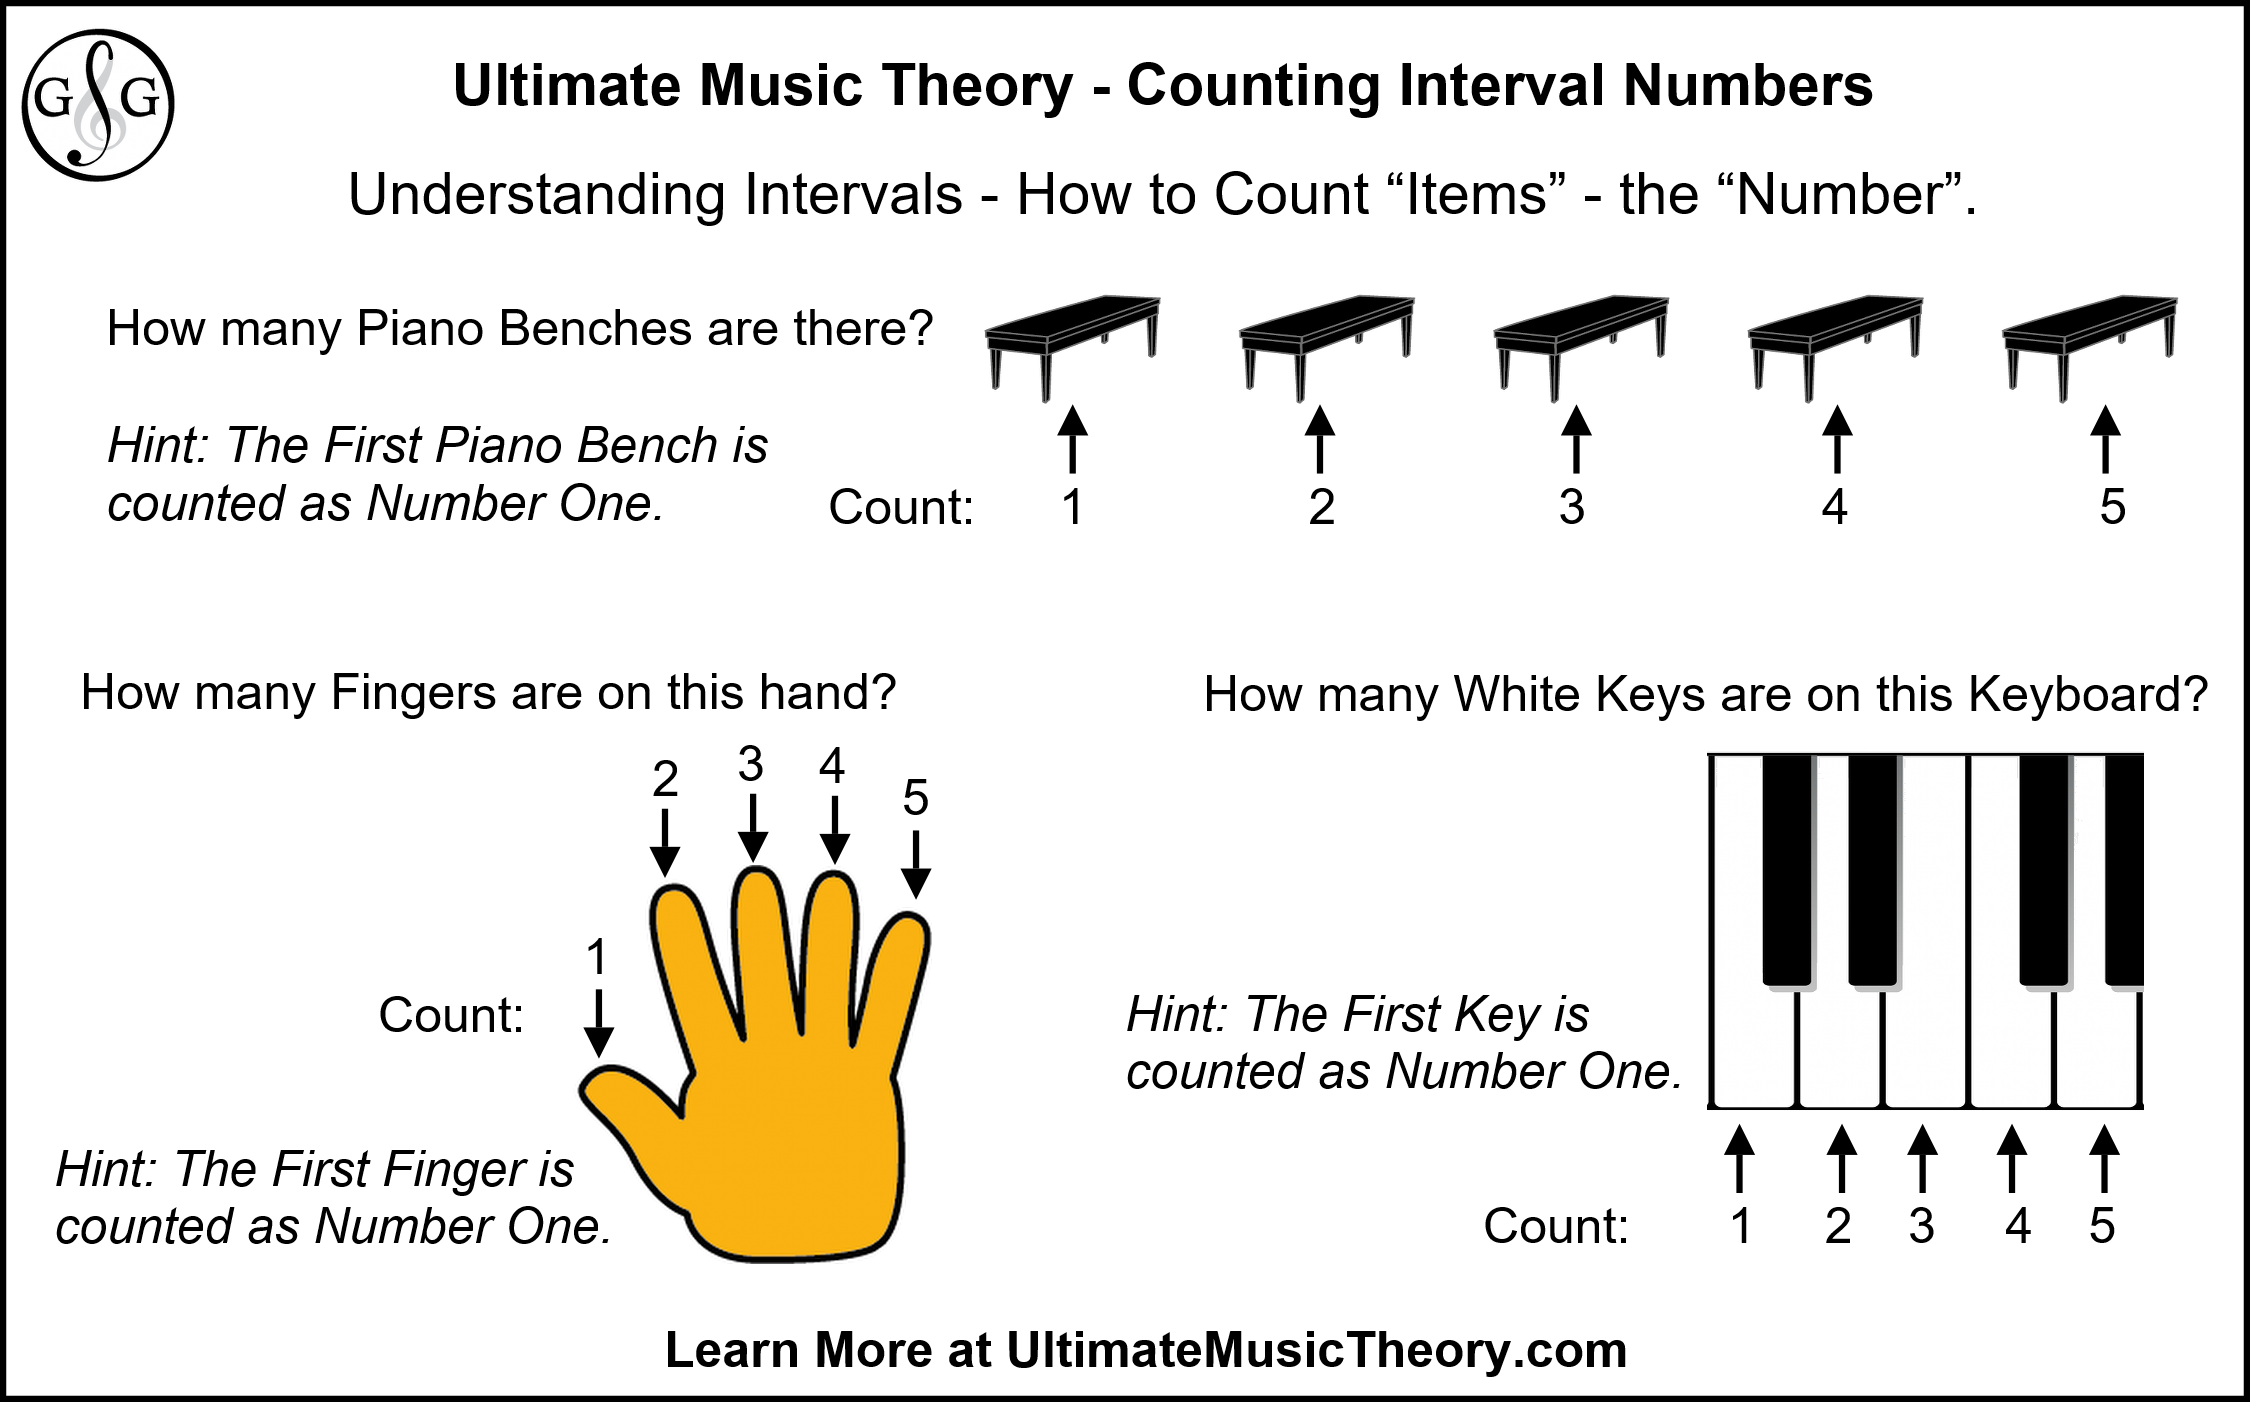 Ultimate Music Theory - Counting Interval Numbers Understanding Counting